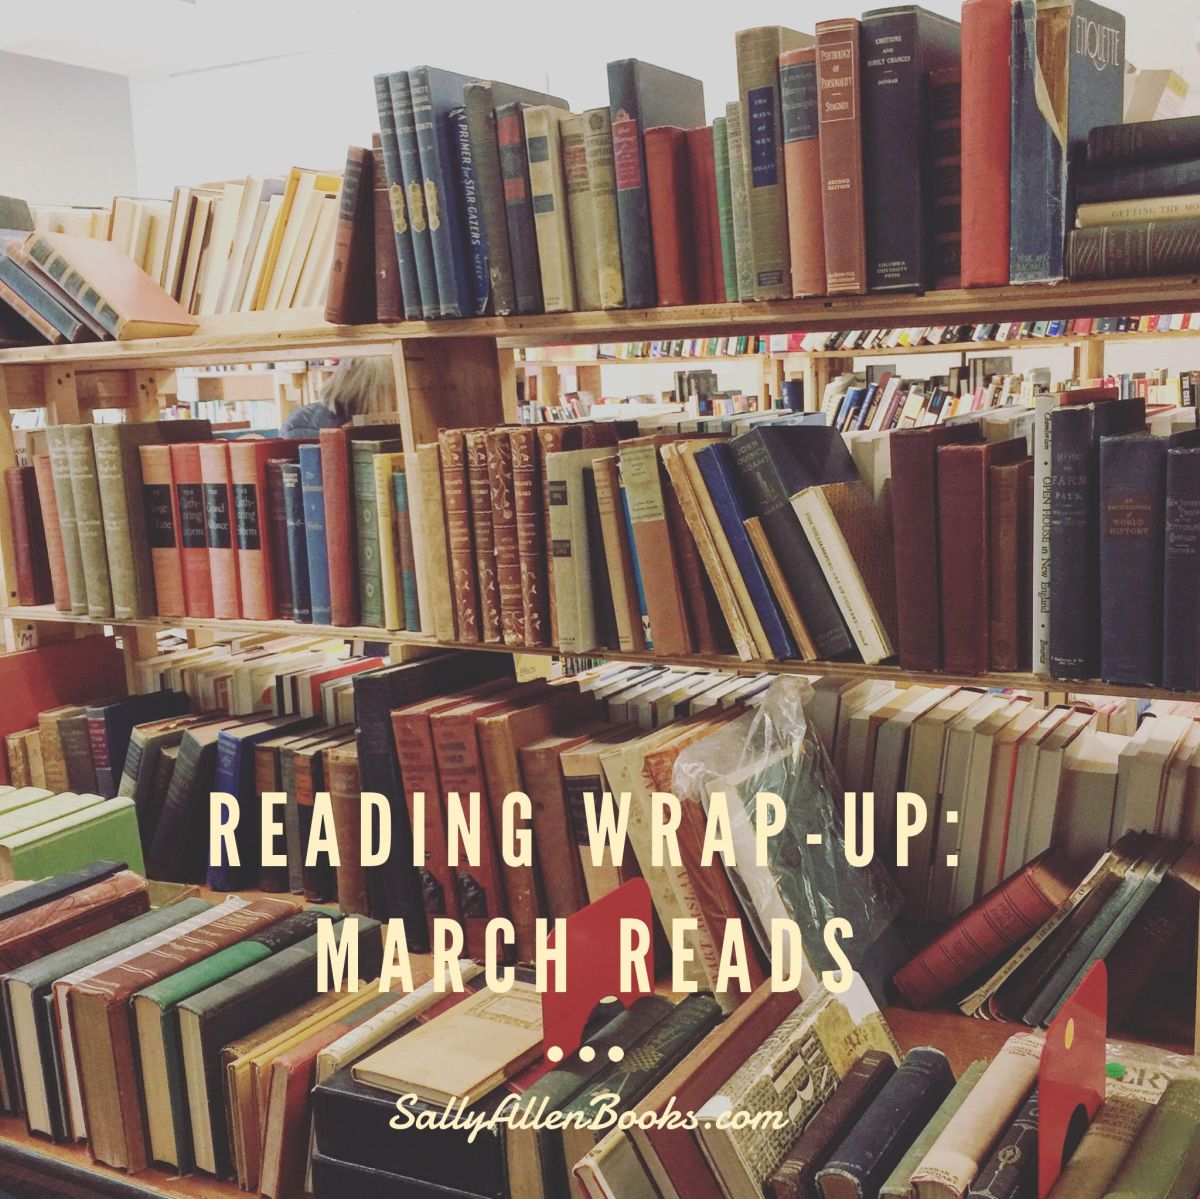 Reading Wrap-Up: March Reads